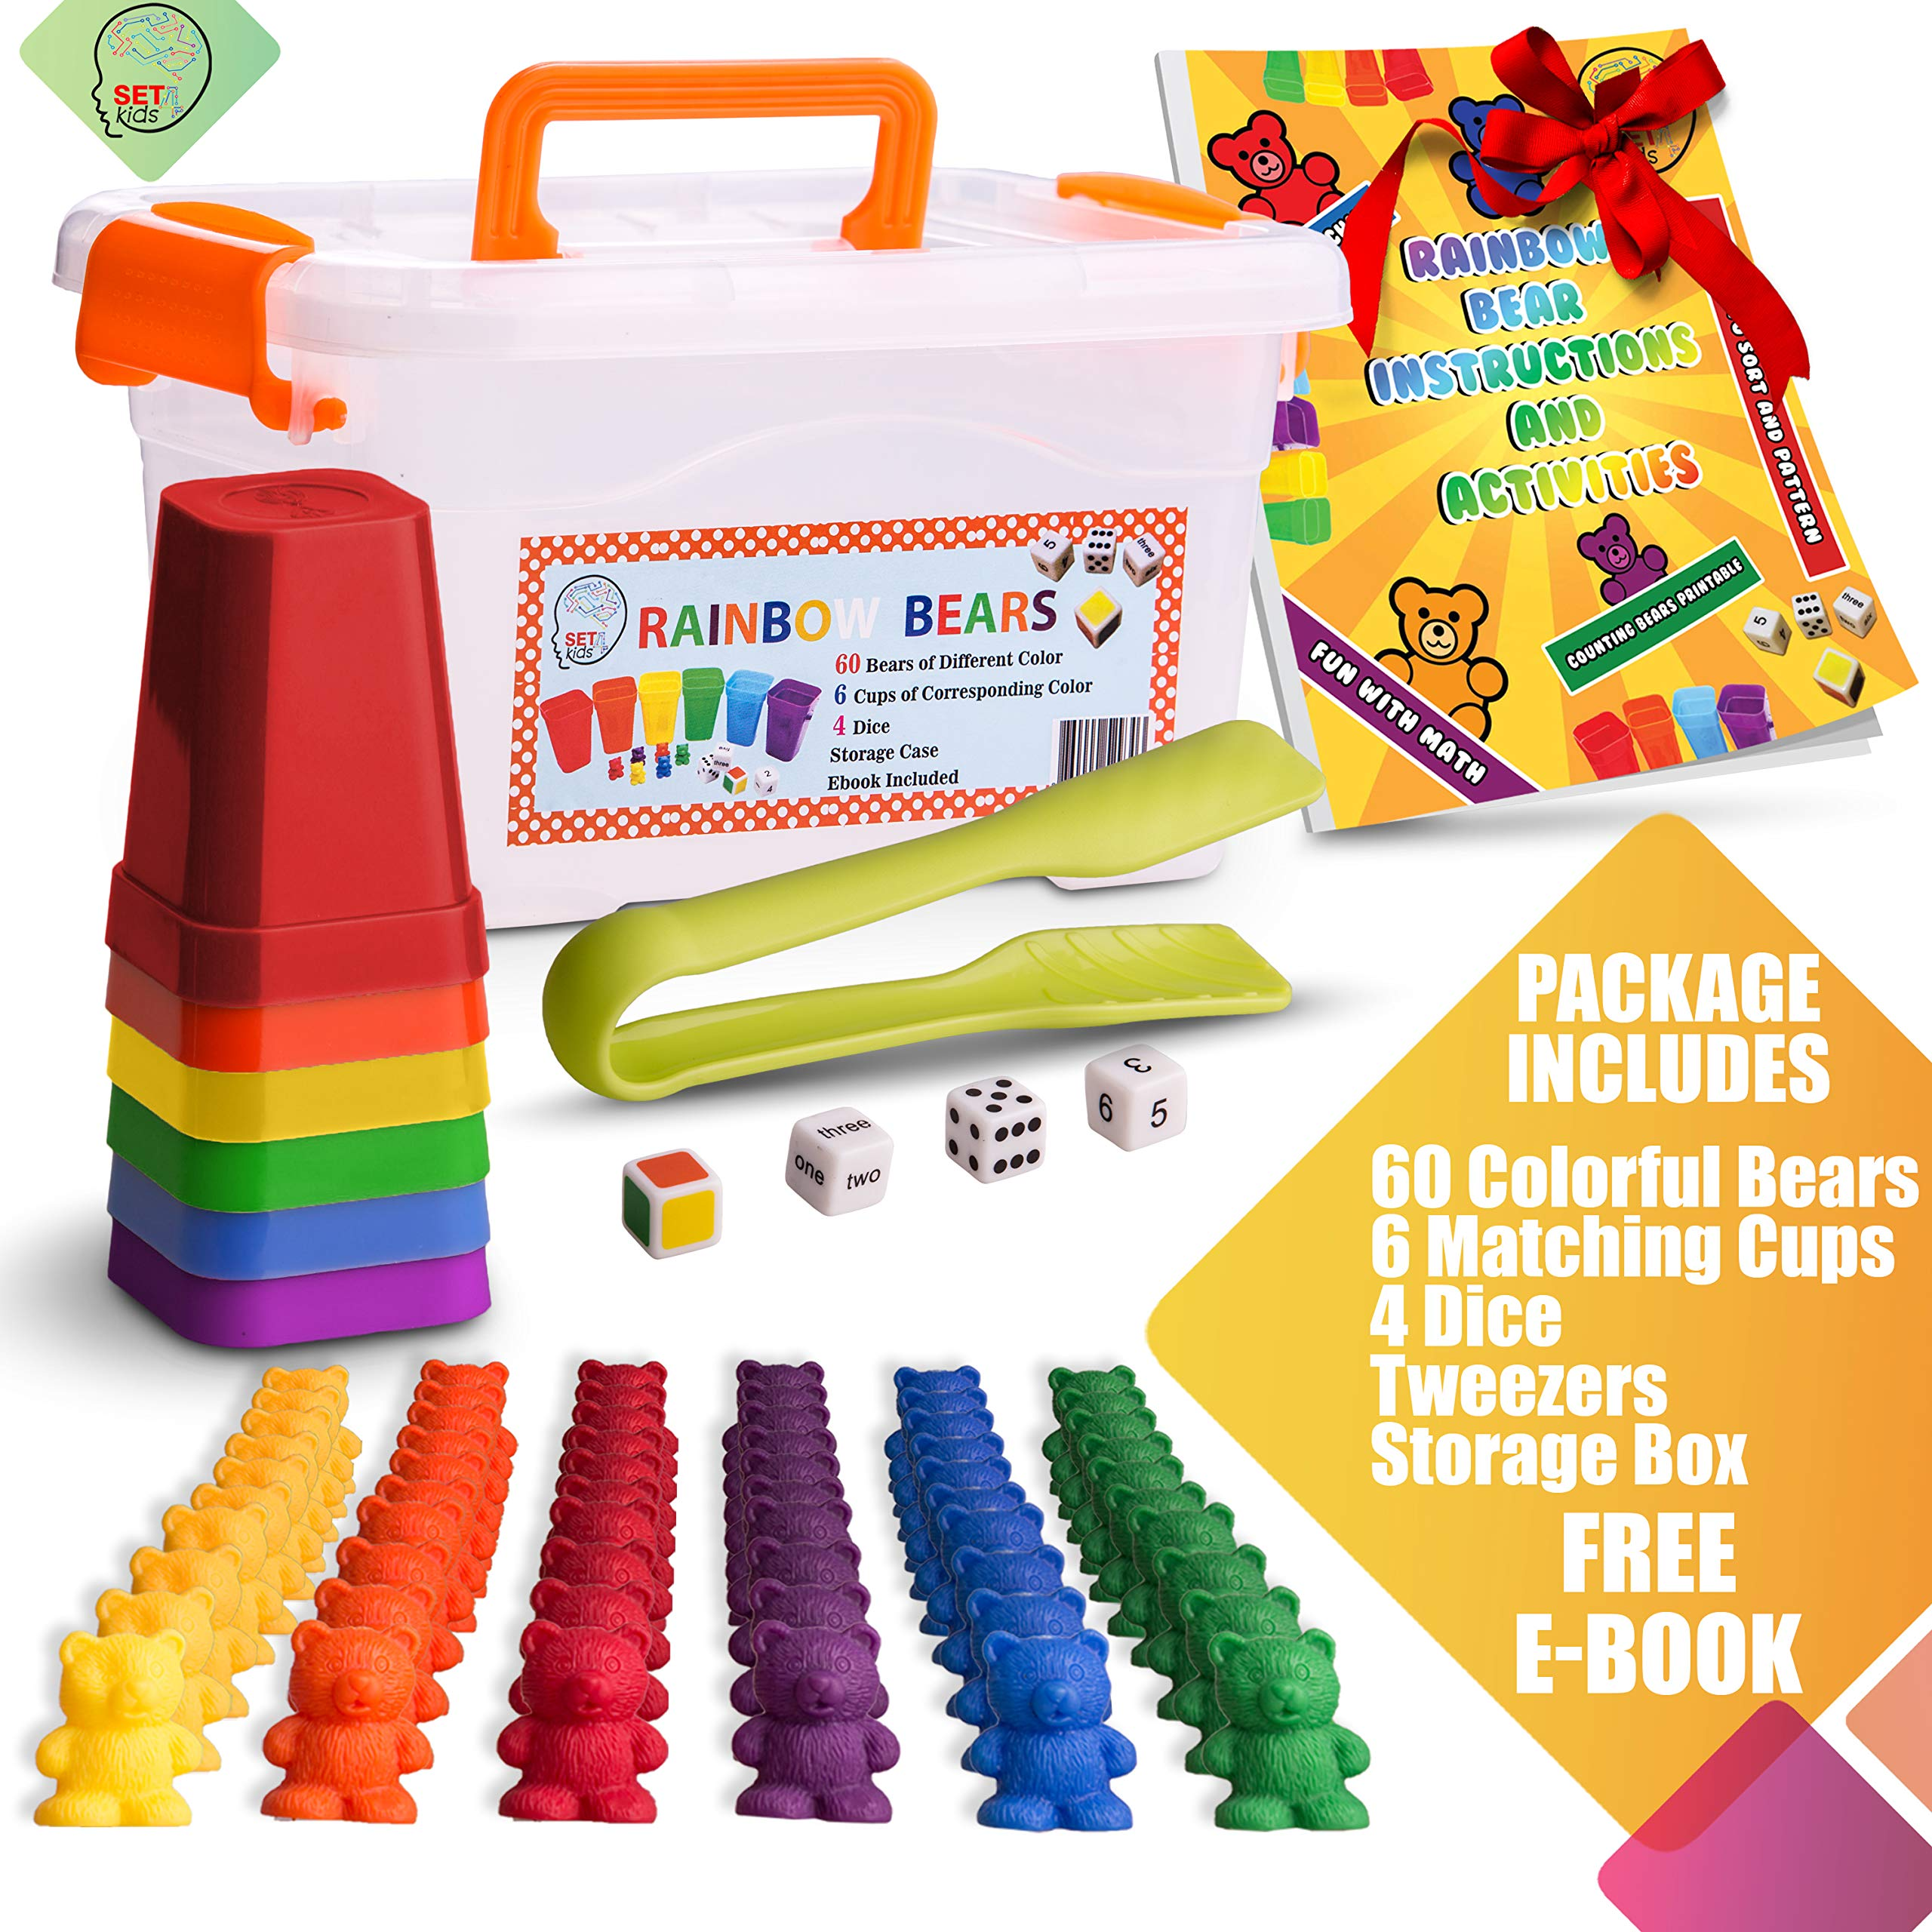 SET4kids Counting Bears with Matching/Sorting Cups, 4 Dice , Tweezers and an Activity e-Book. for Toddler Games | Early Childhood Education. 71 pc Game Set by SET4kids